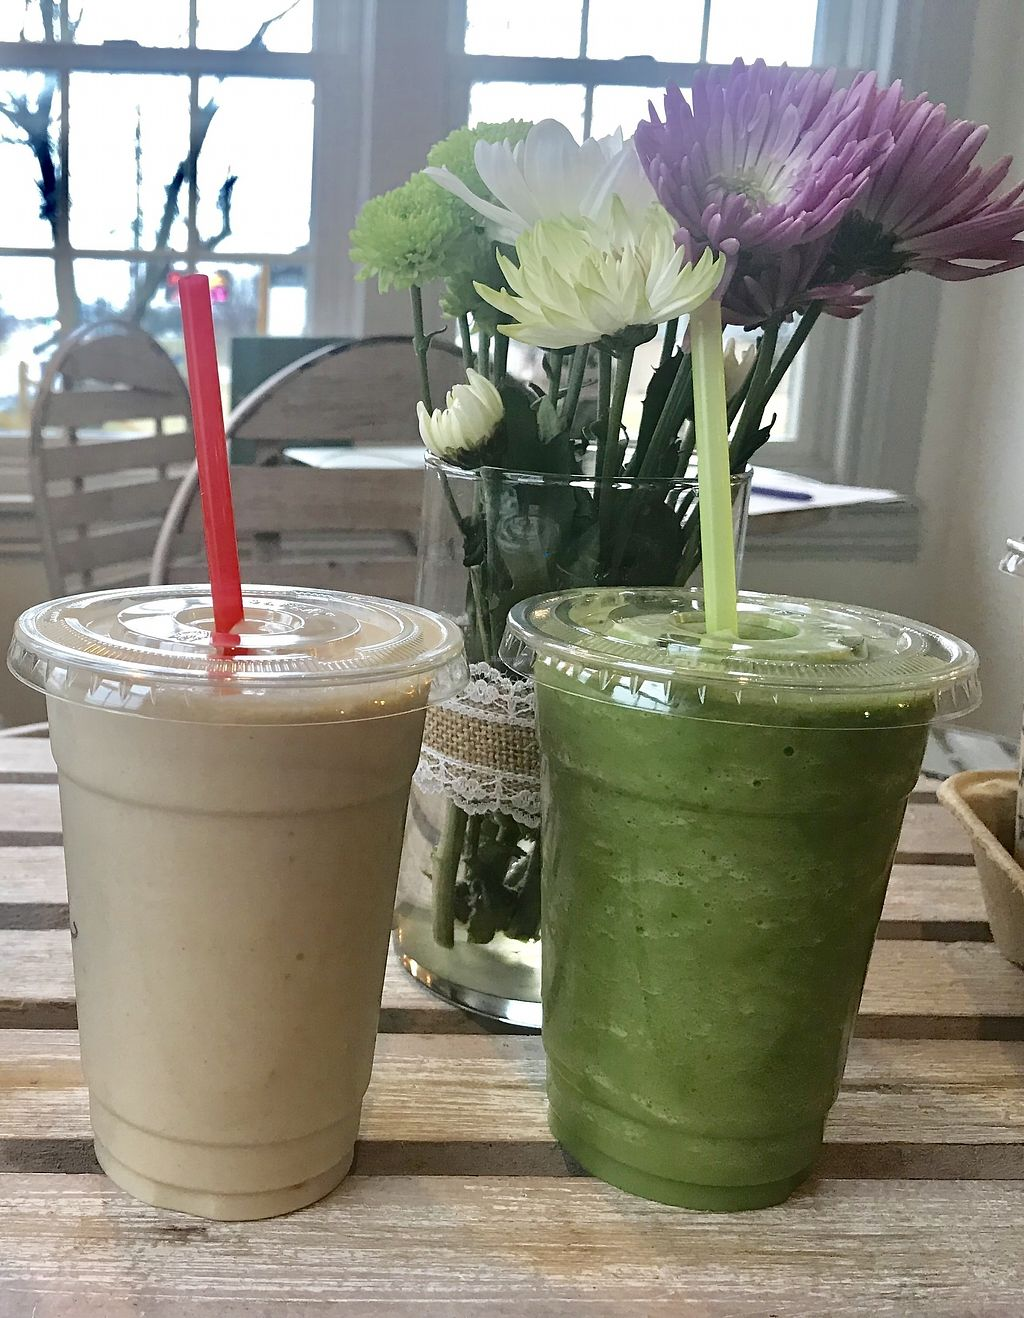 """Photo of Juniper Tree Juice Bar and Wellness  by <a href=""""/members/profile/JuniperTree"""">JuniperTree</a> <br/>Protein plant based <br/> March 4, 2018  - <a href='/contact/abuse/image/104632/366456'>Report</a>"""